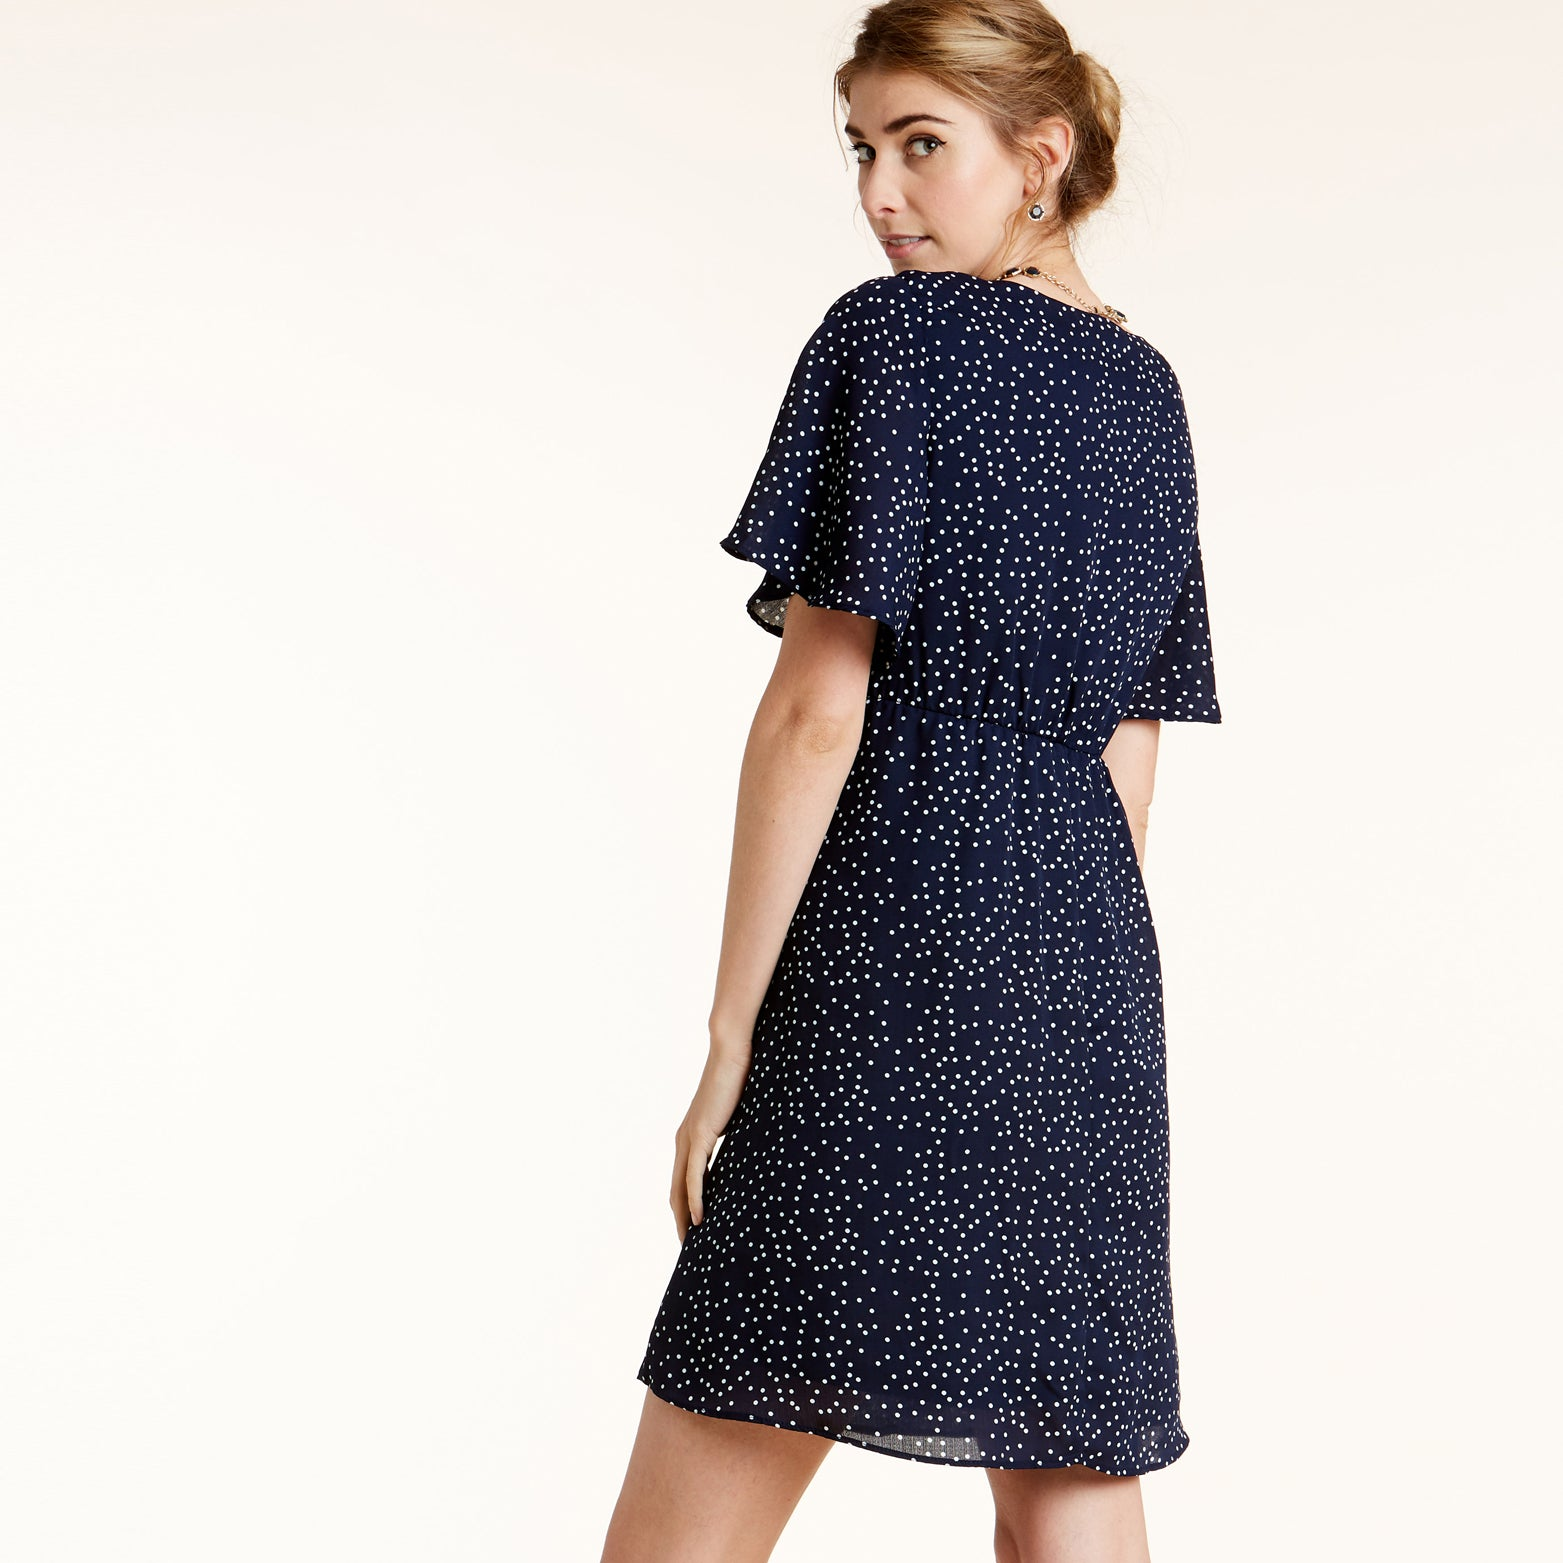 Polka Dot Poppins Dress